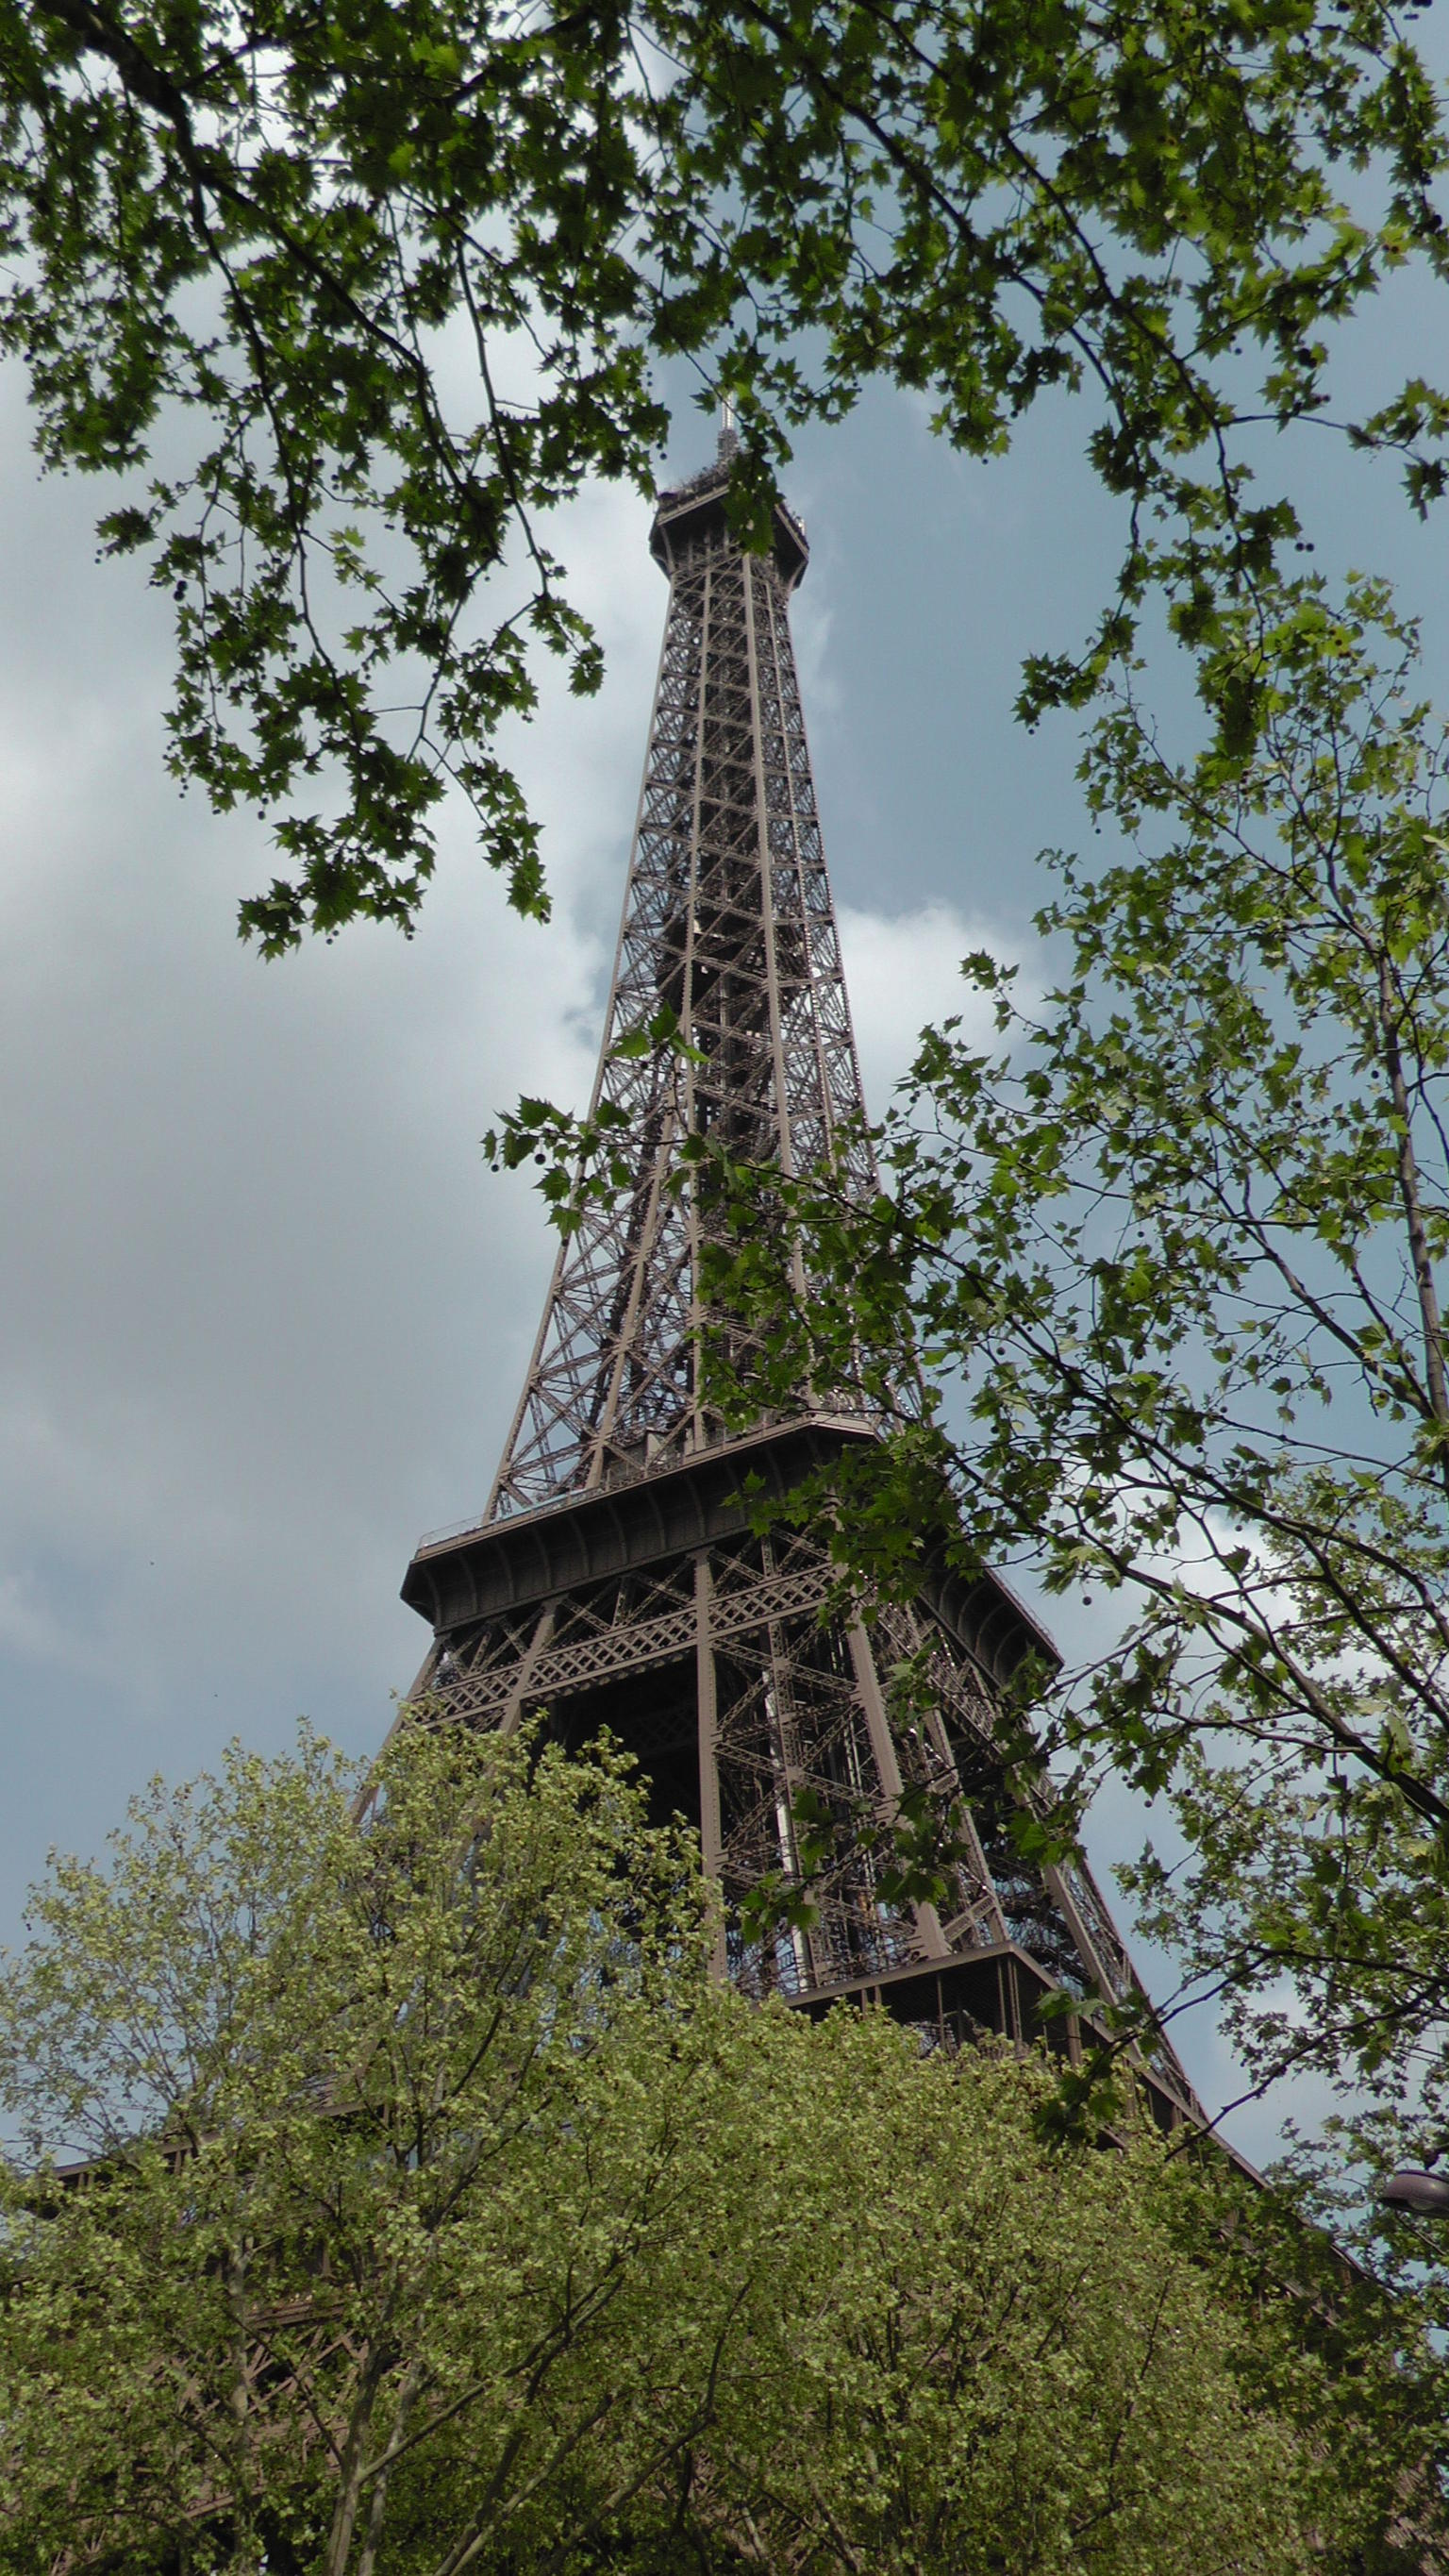 MORE PHOTOS, Skip the Line Eiffel Tower in Small Group With Guide